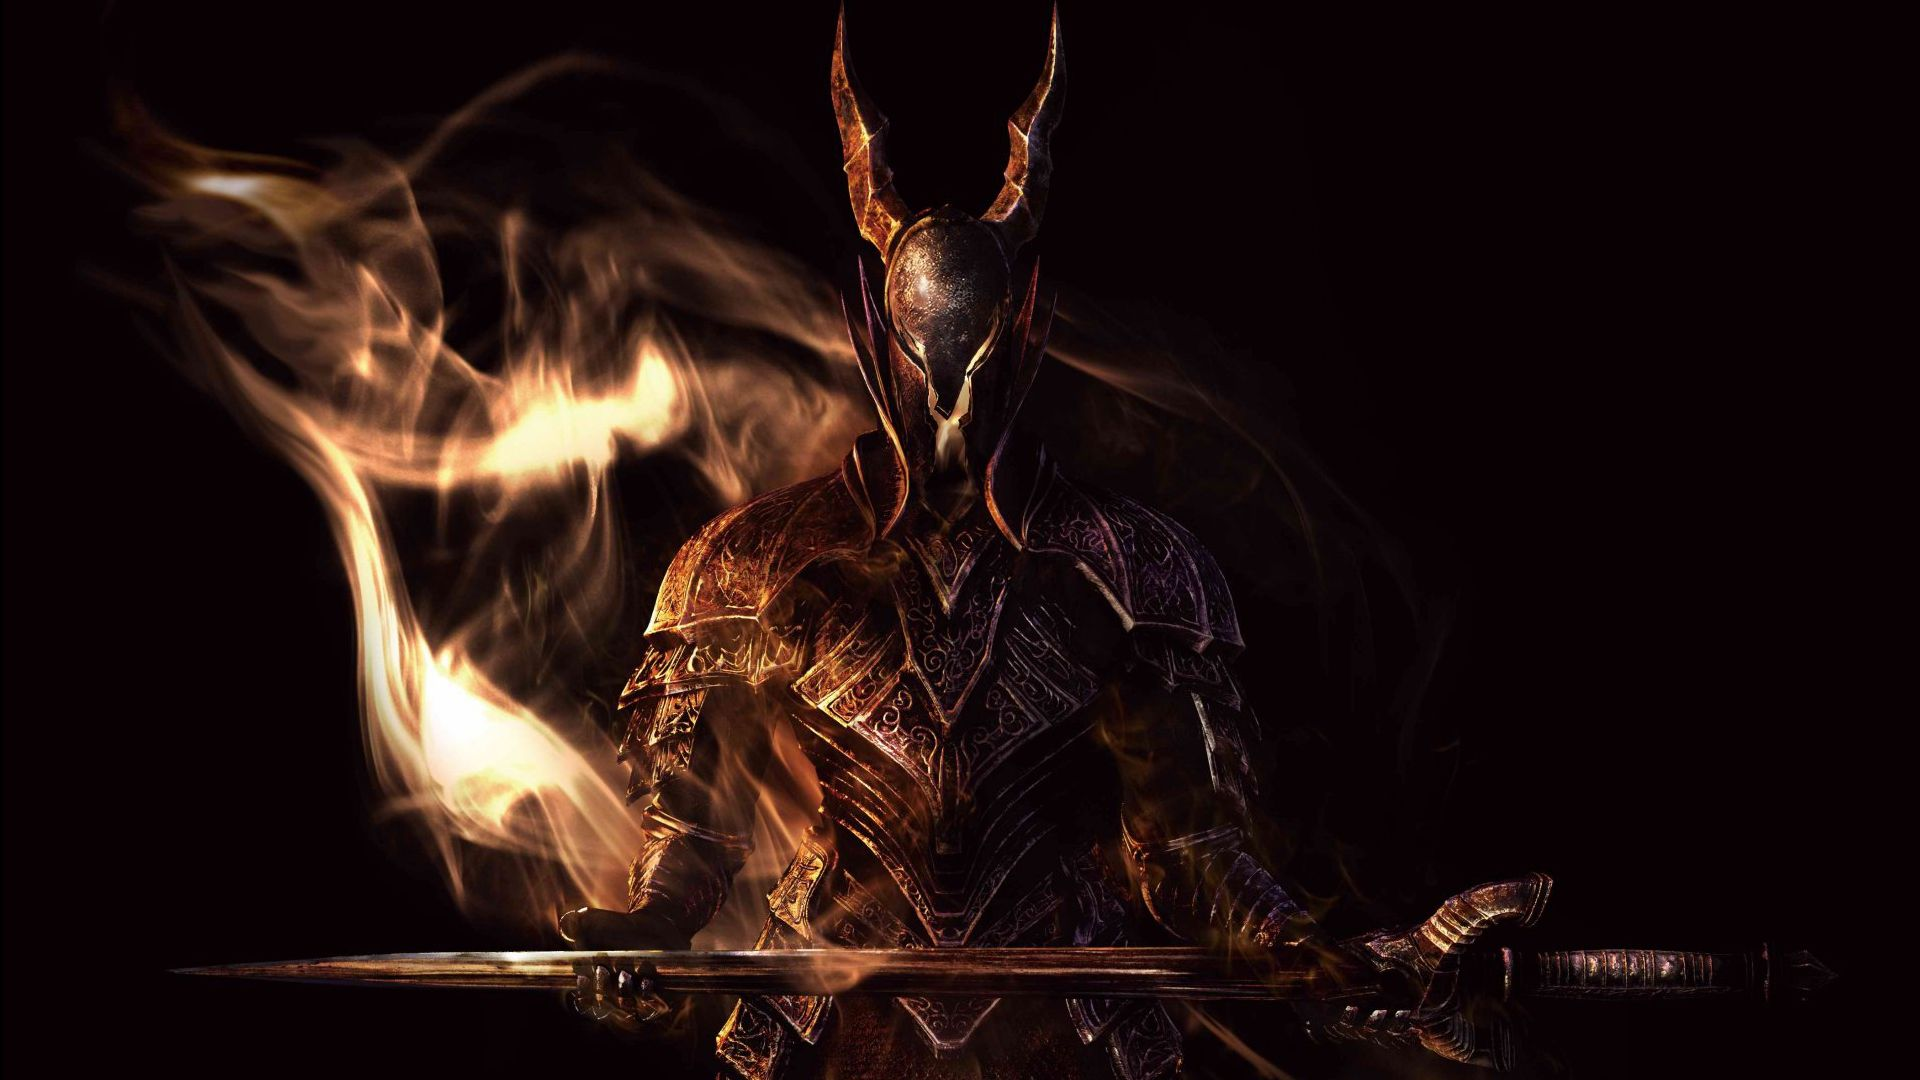 354 Dark Souls wallpapers for your PC, mobile phone, iPad, iPhone.